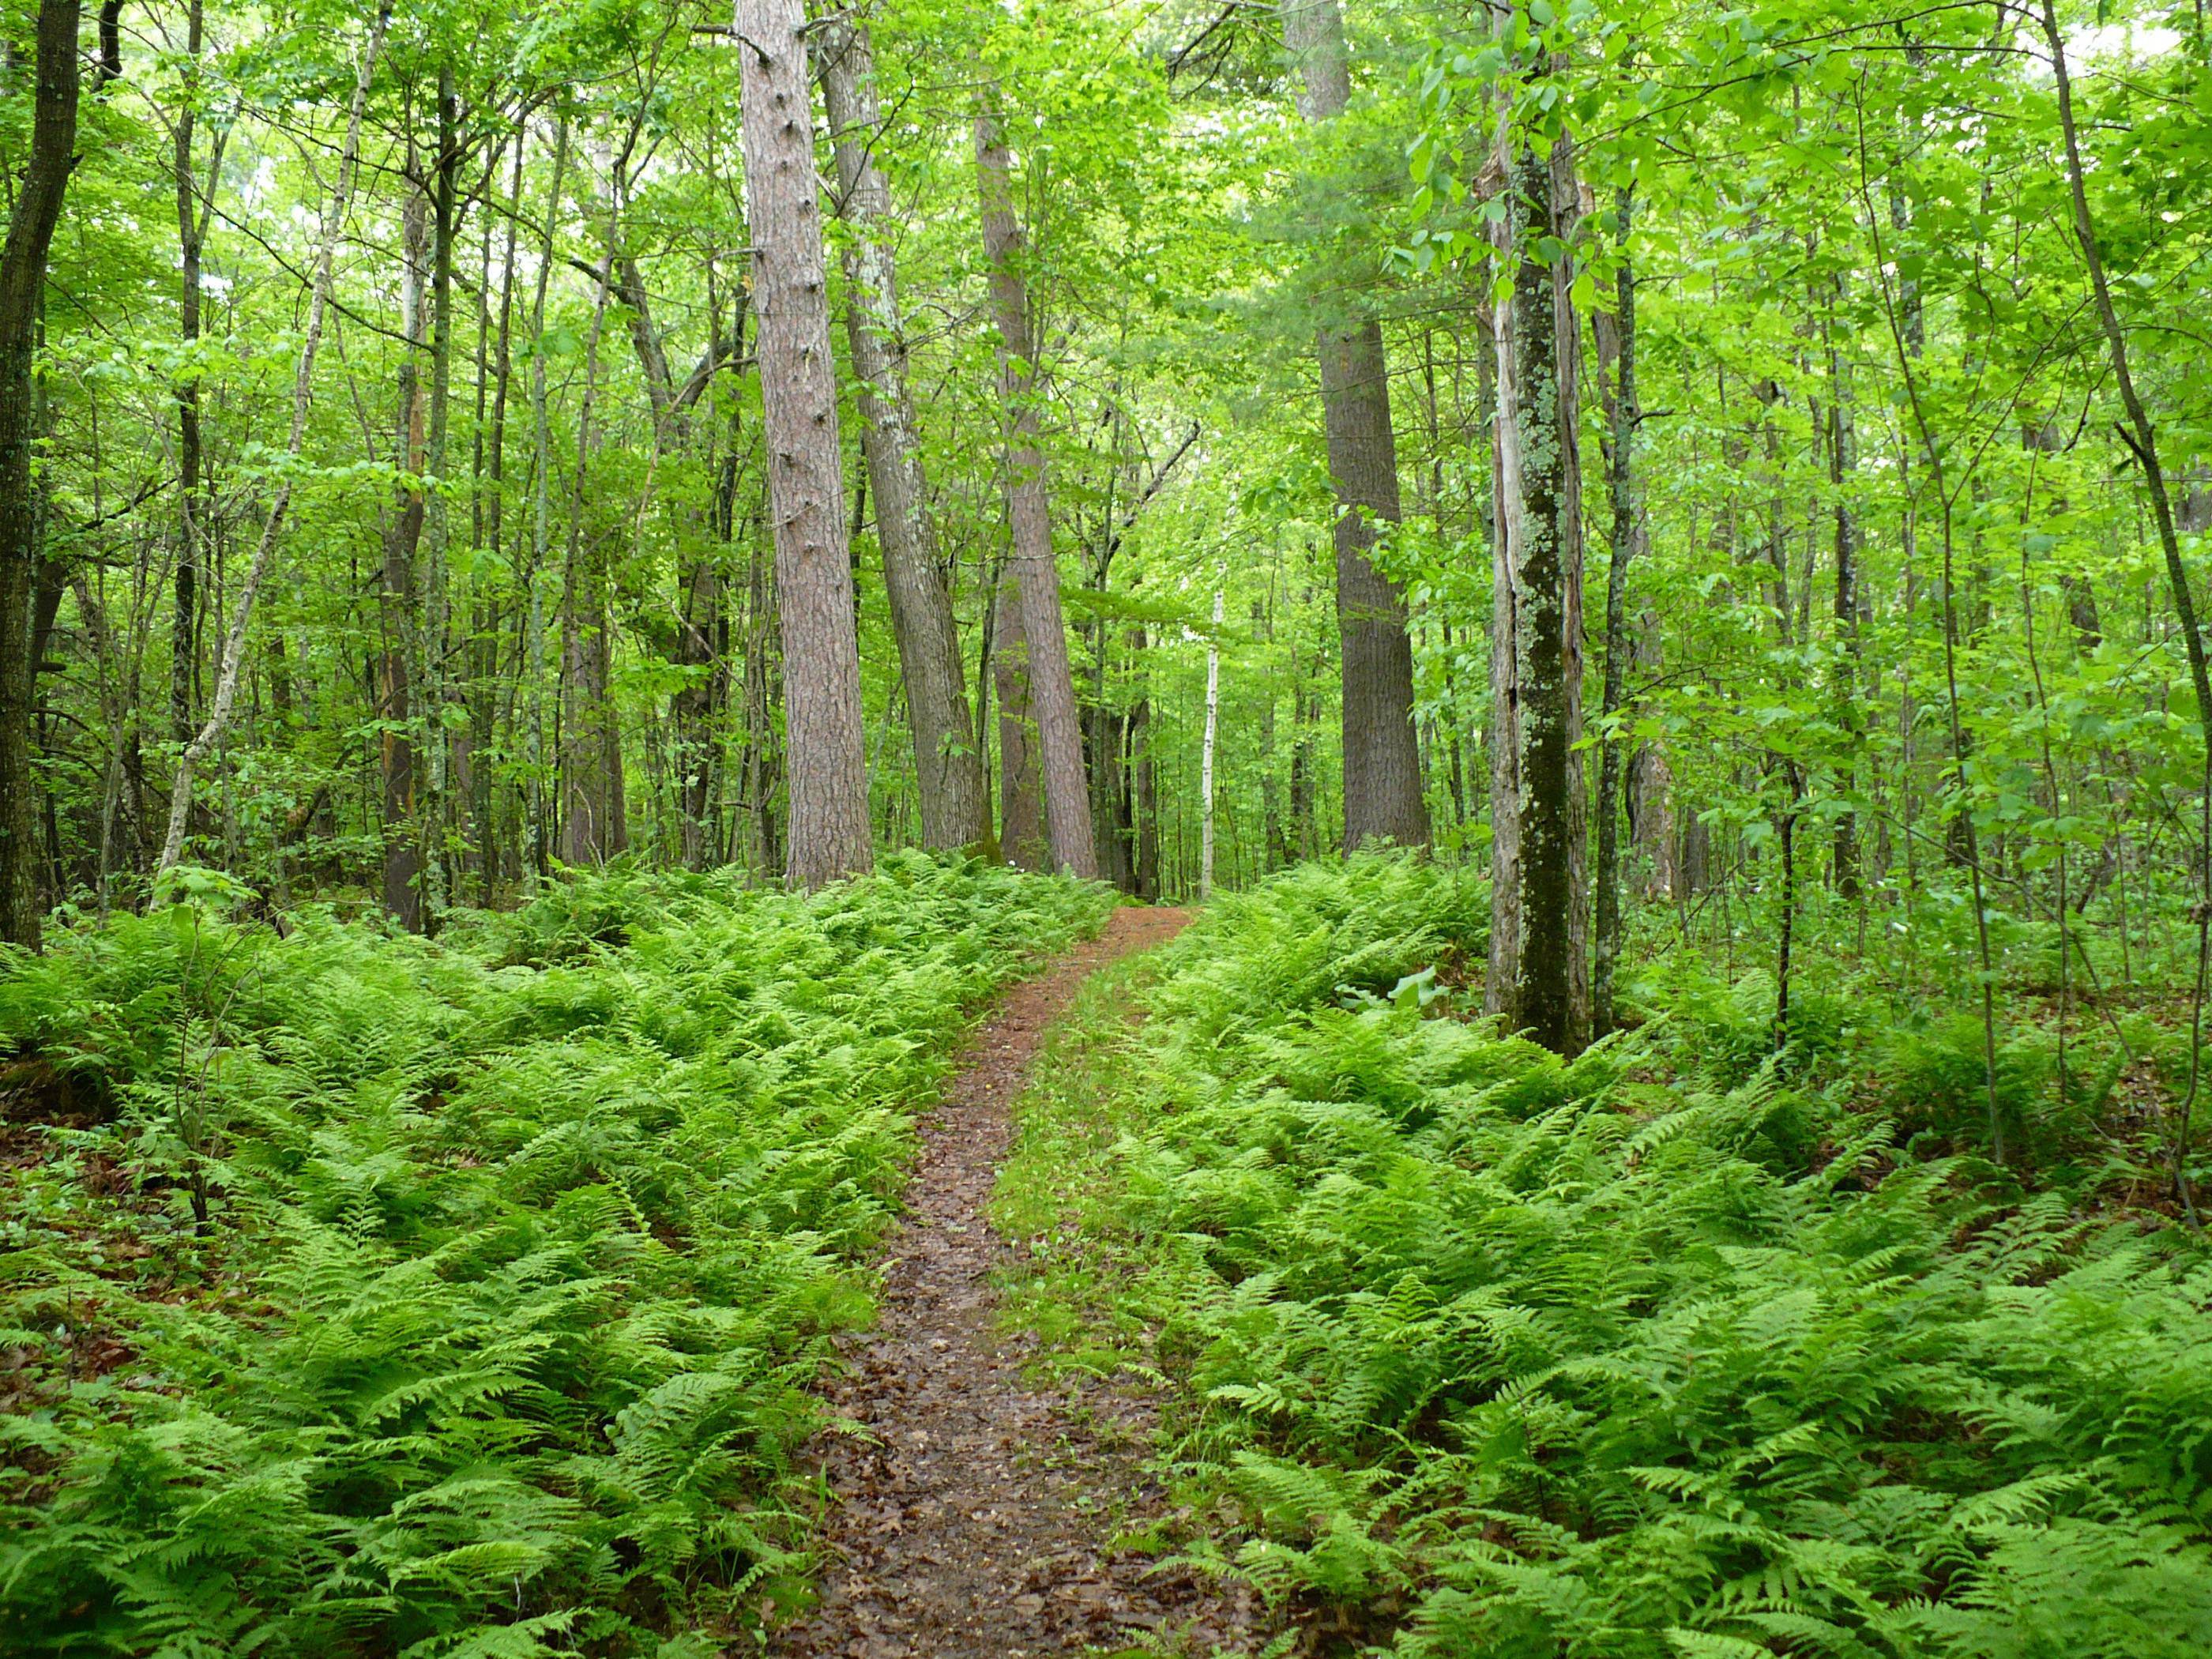 This was taken on a fern-lined trail in Northern Wisconsin. If green is your favorite color, you might like this place.